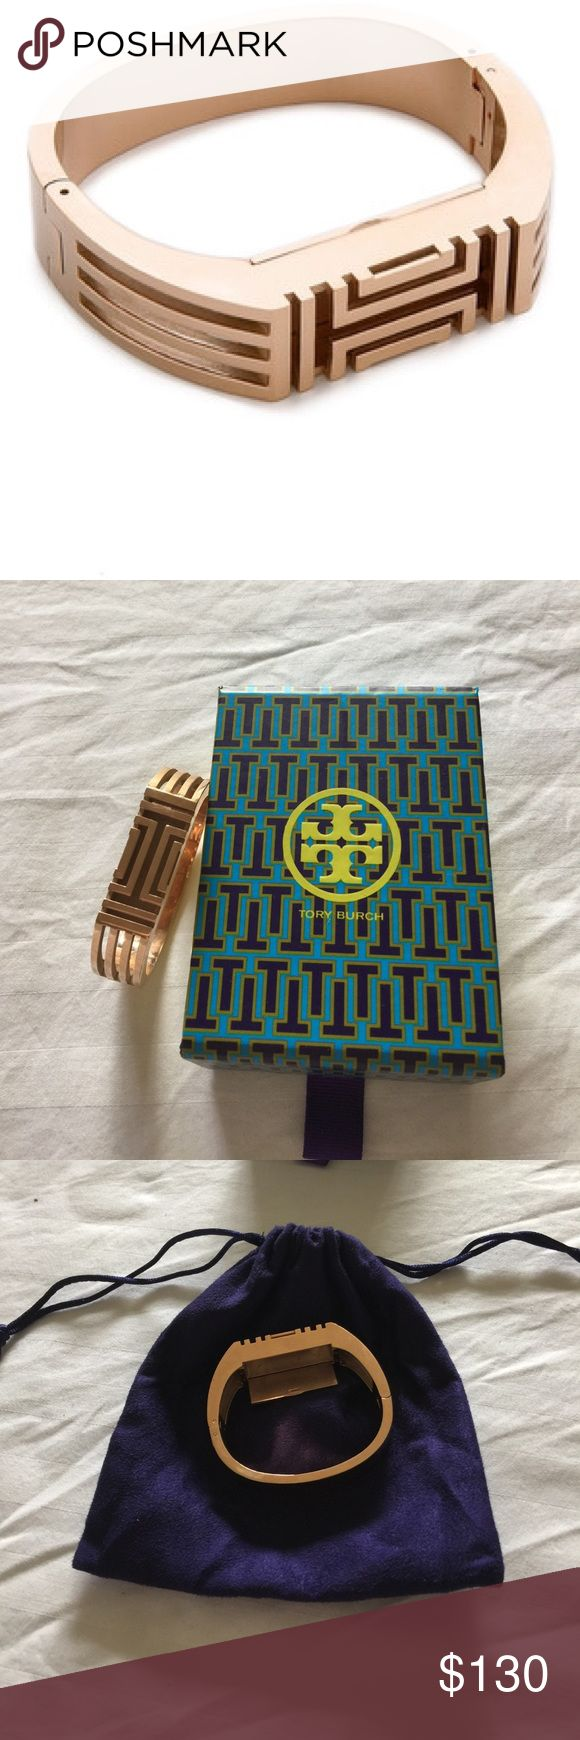 Tory Burch Fitbit Bracelet Rose Gold Sold out in Rose Gold at all retailers. Like new worn under 5 times. Tory Burch Jewelry Bracelets